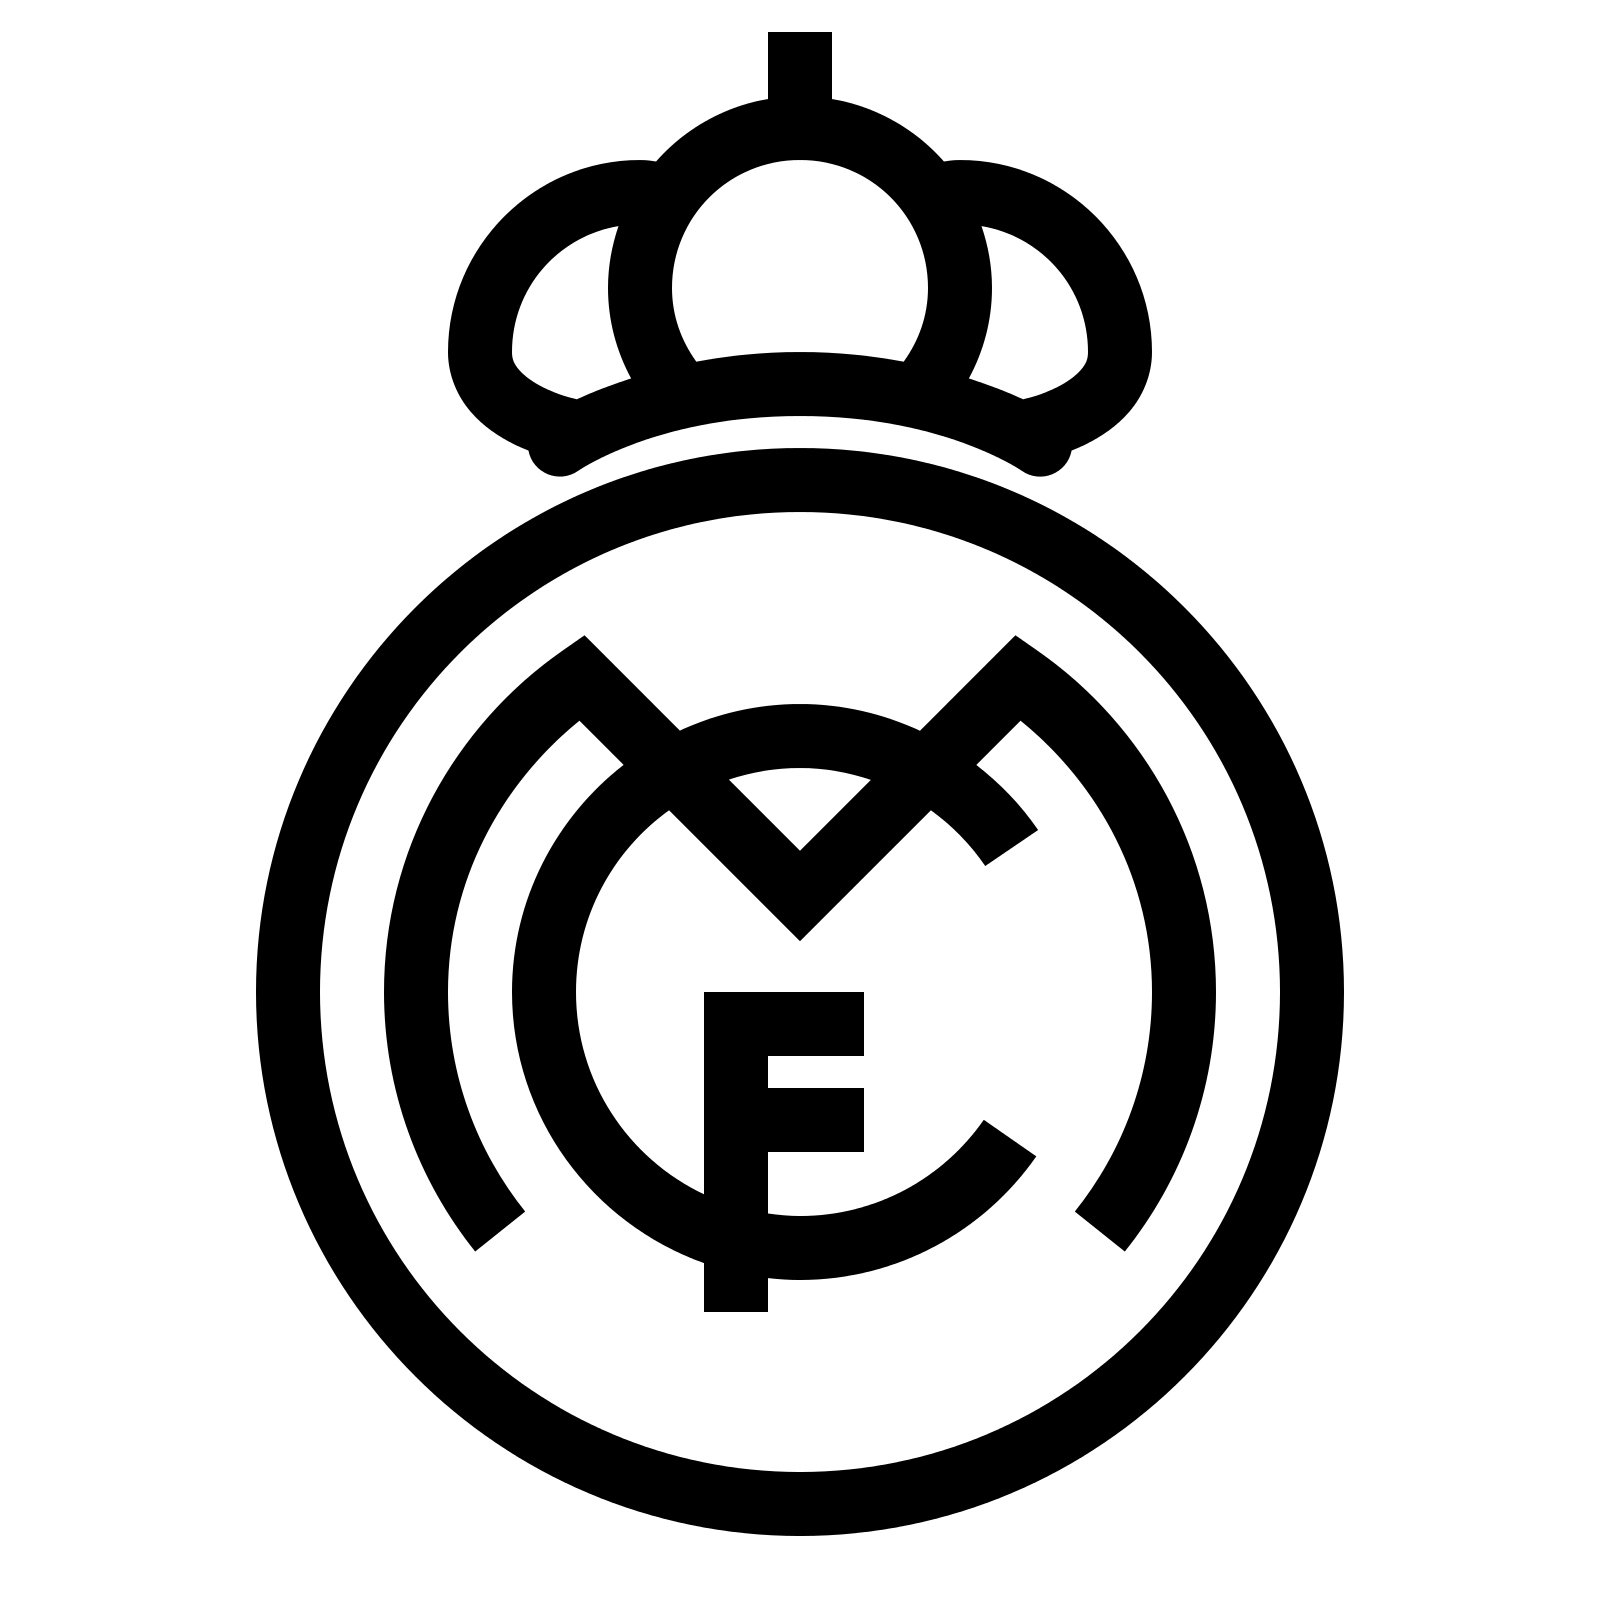 Real Madrid Logo, Real Madrid Symbol, Meaning, History and